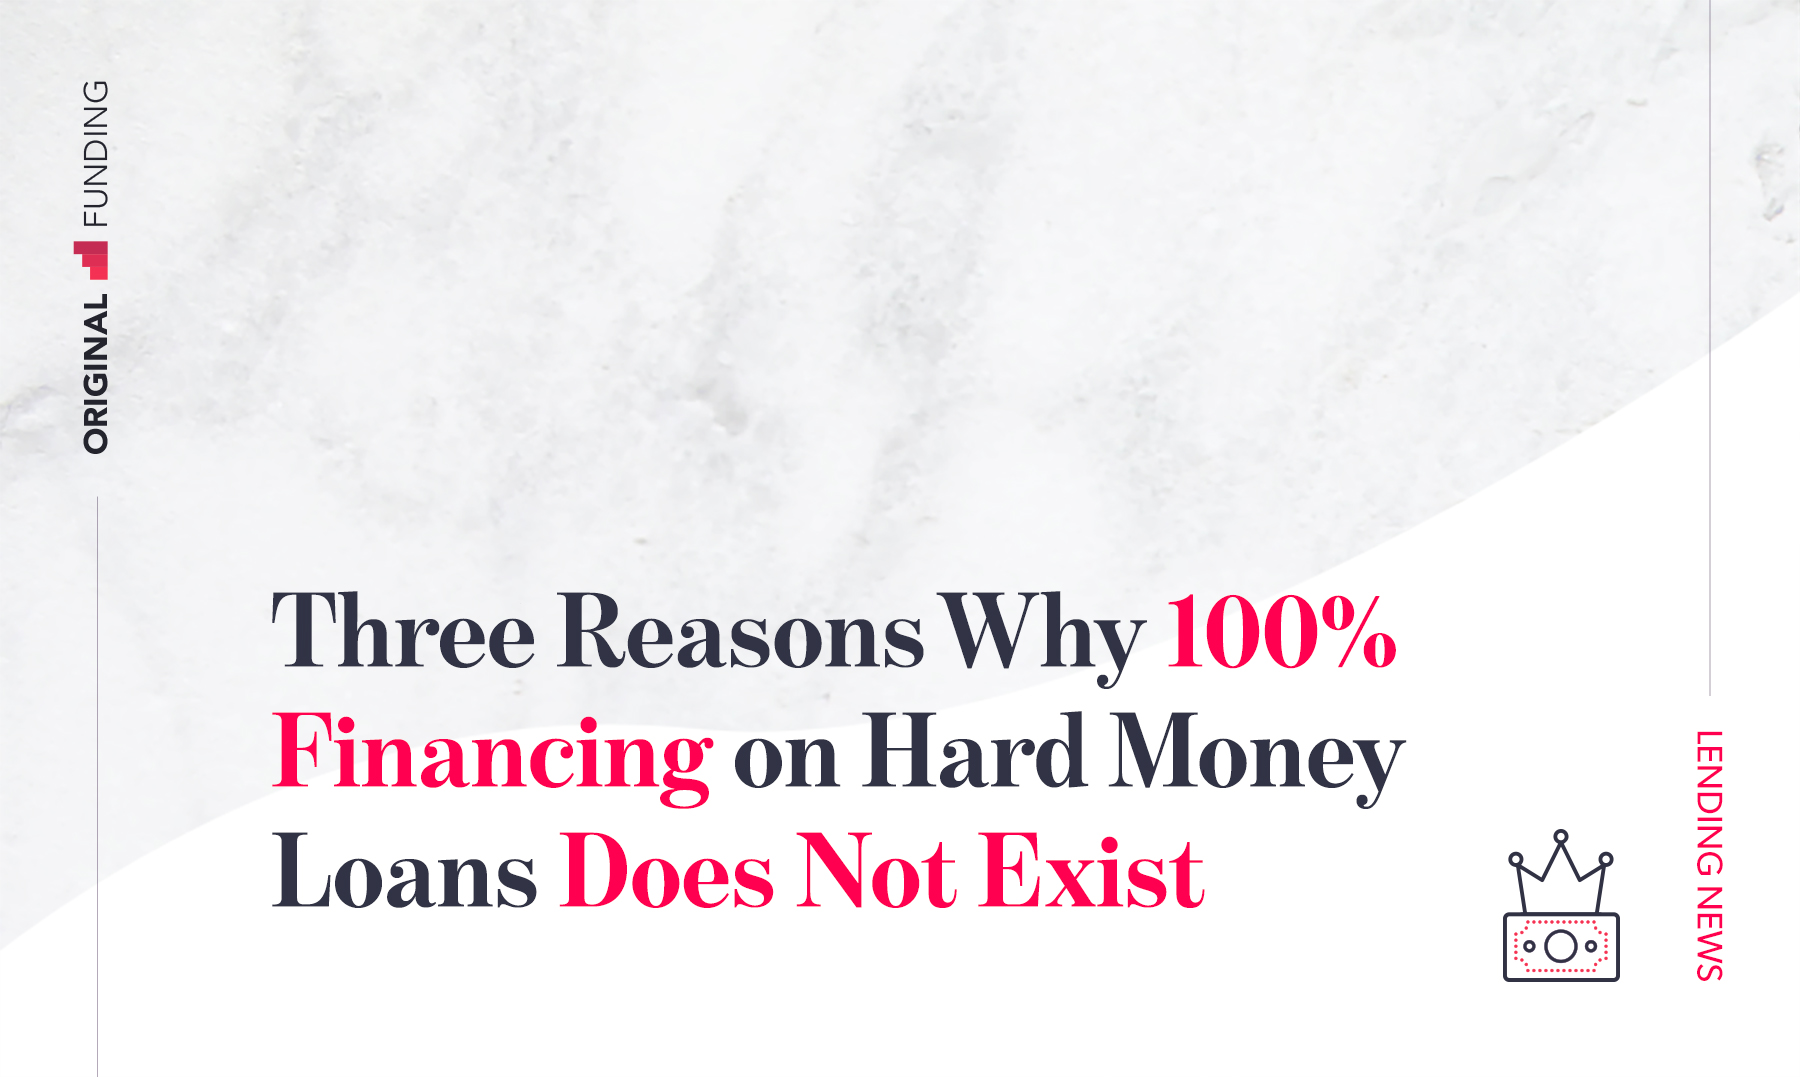 Three Reasons Why 100% Financing on Hard Money Loans Does Not Exist